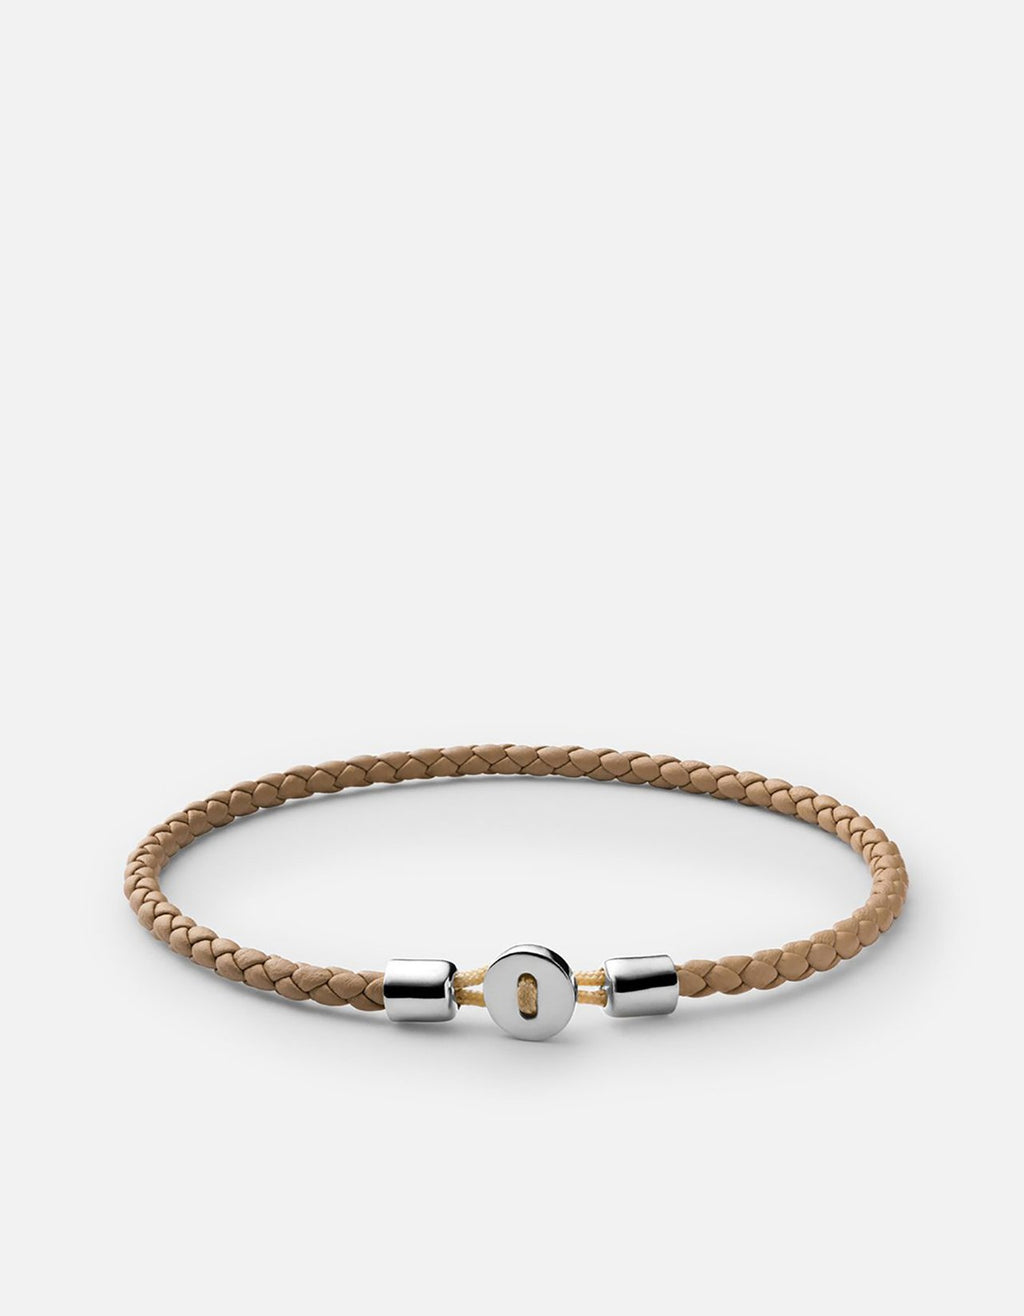 Miansai Nexus Leather Bracelet, Sterling Silver, Polished Natural